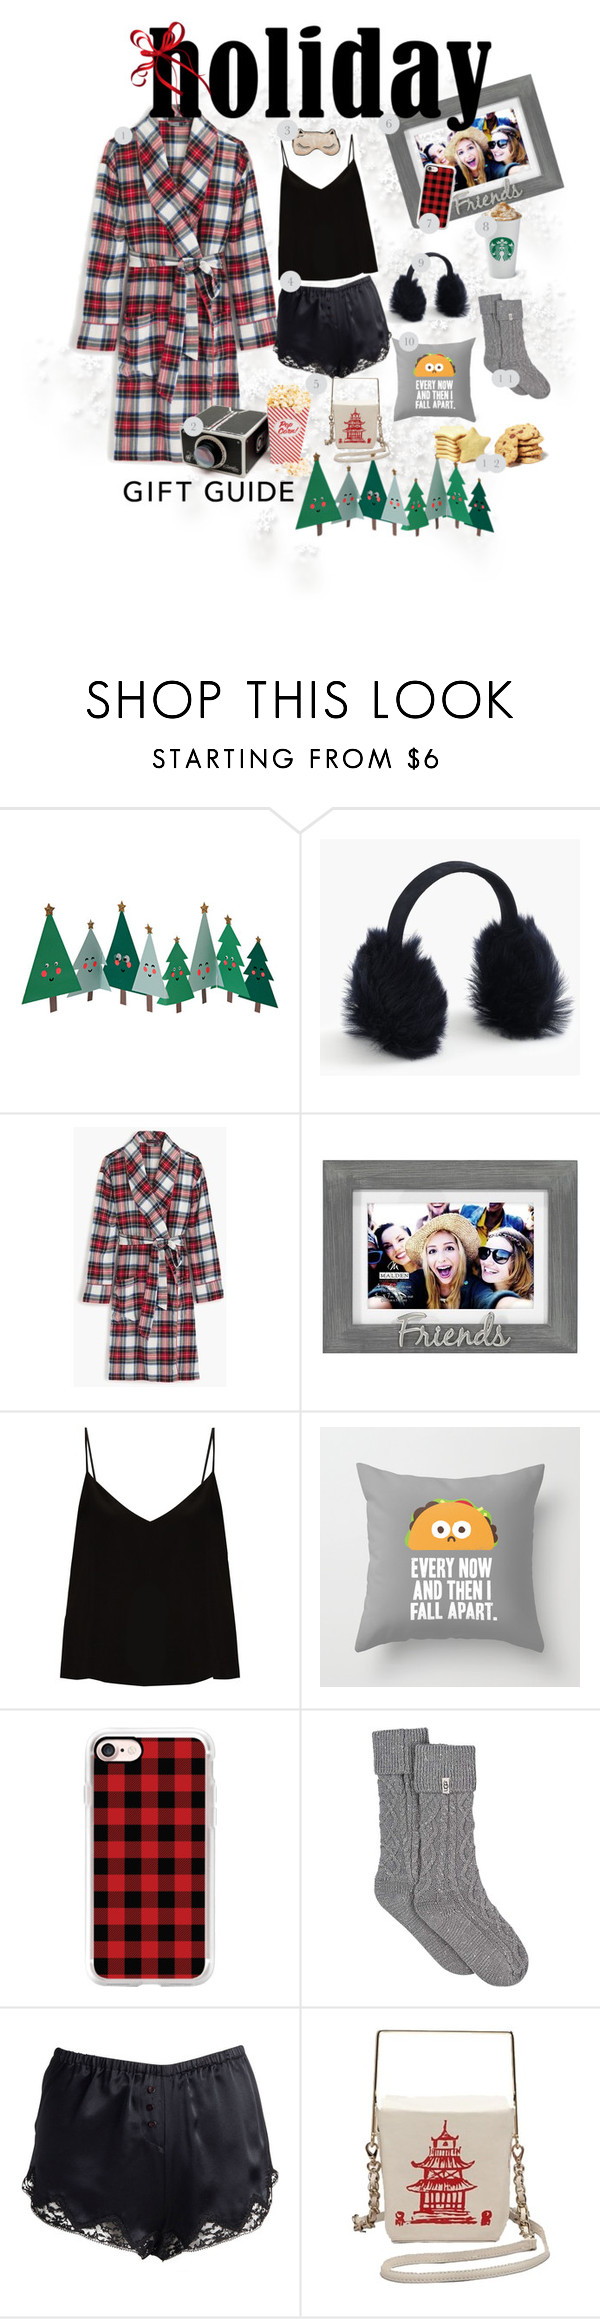 """""""12 days of Bestie Gifts"""" by sweepea ❤ liked on Polyvore featuring Meri Meri, J.Crew, Malden International Designs, Raey, Casetify, UGG and Kate Spade"""